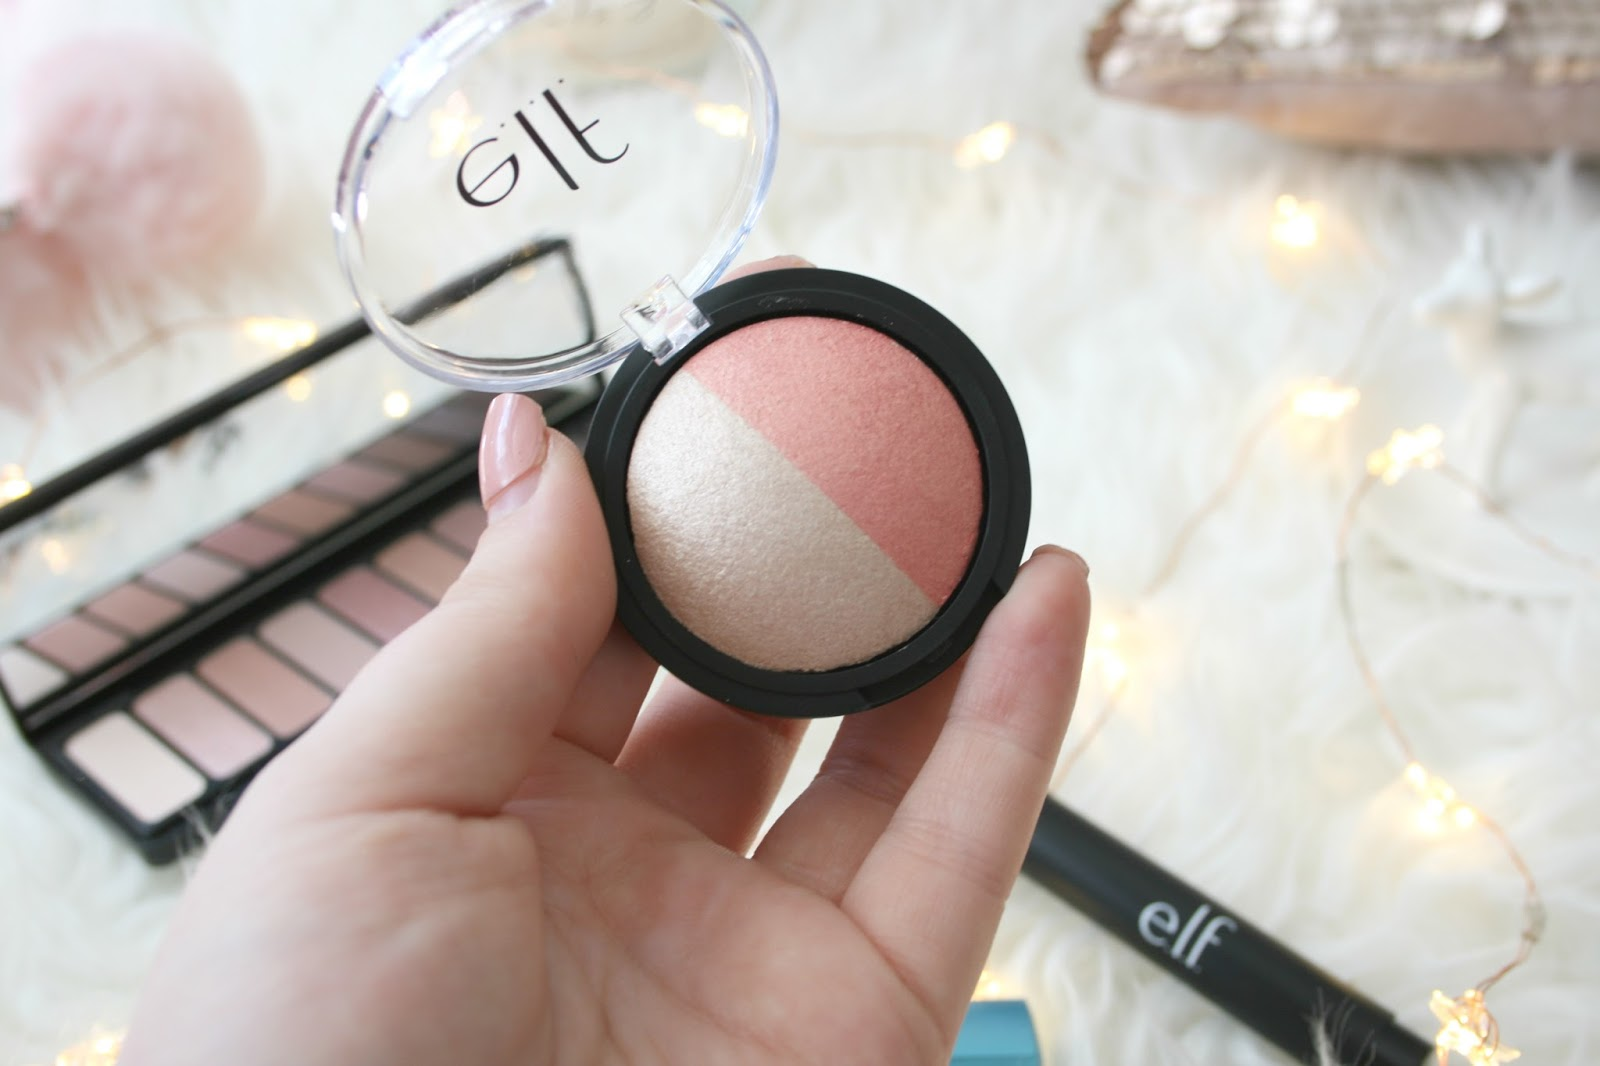 Elf Cosmetics Baked Highlighter and Blush Duo